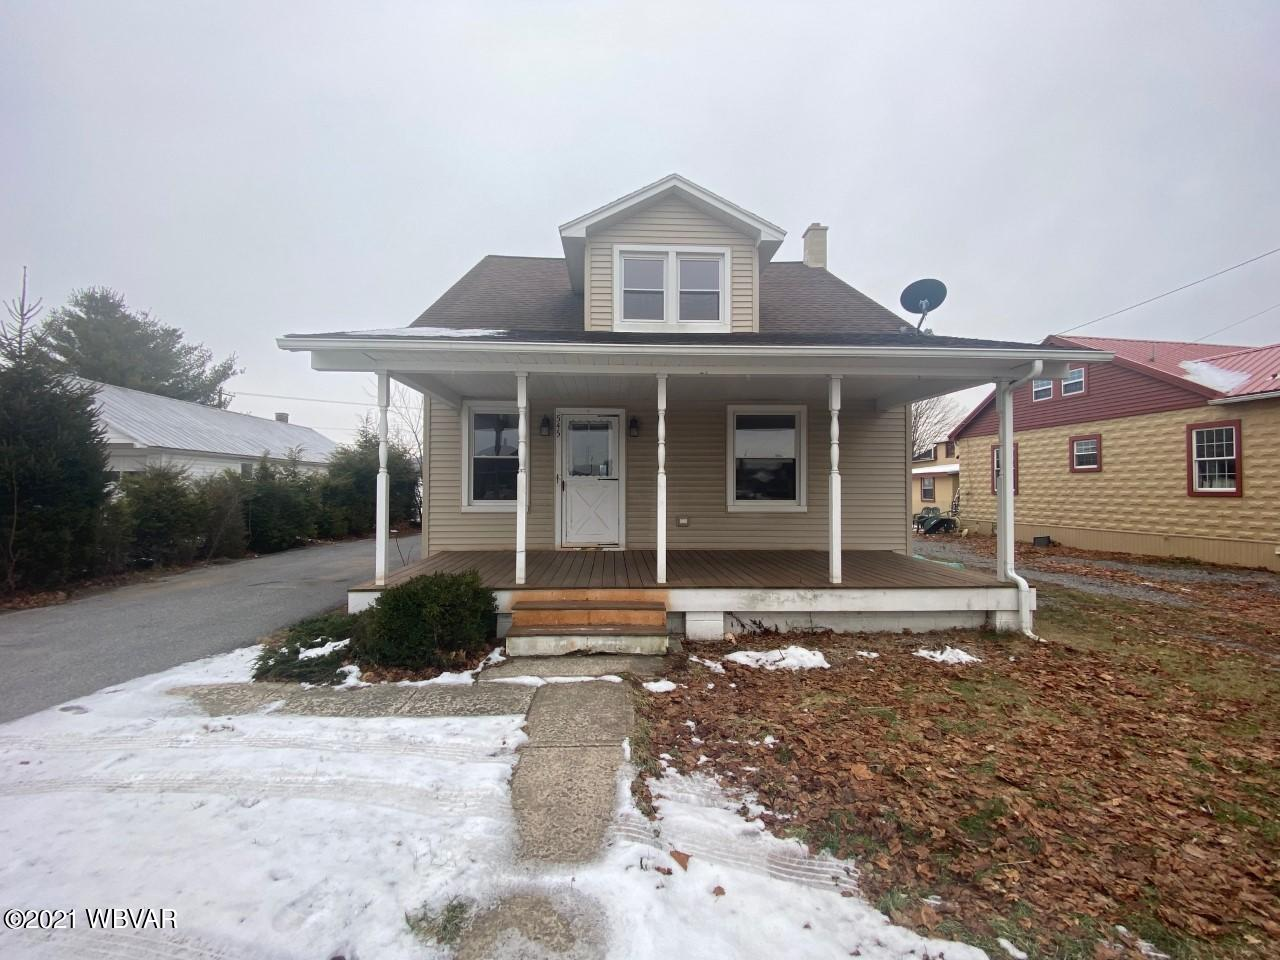 545 PA-405 HIGHWAY, Hughesville, PA 17737, 2 Bedrooms Bedrooms, ,1 BathroomBathrooms,Resid-lease/rental,For sale,PA-405,WB-91734